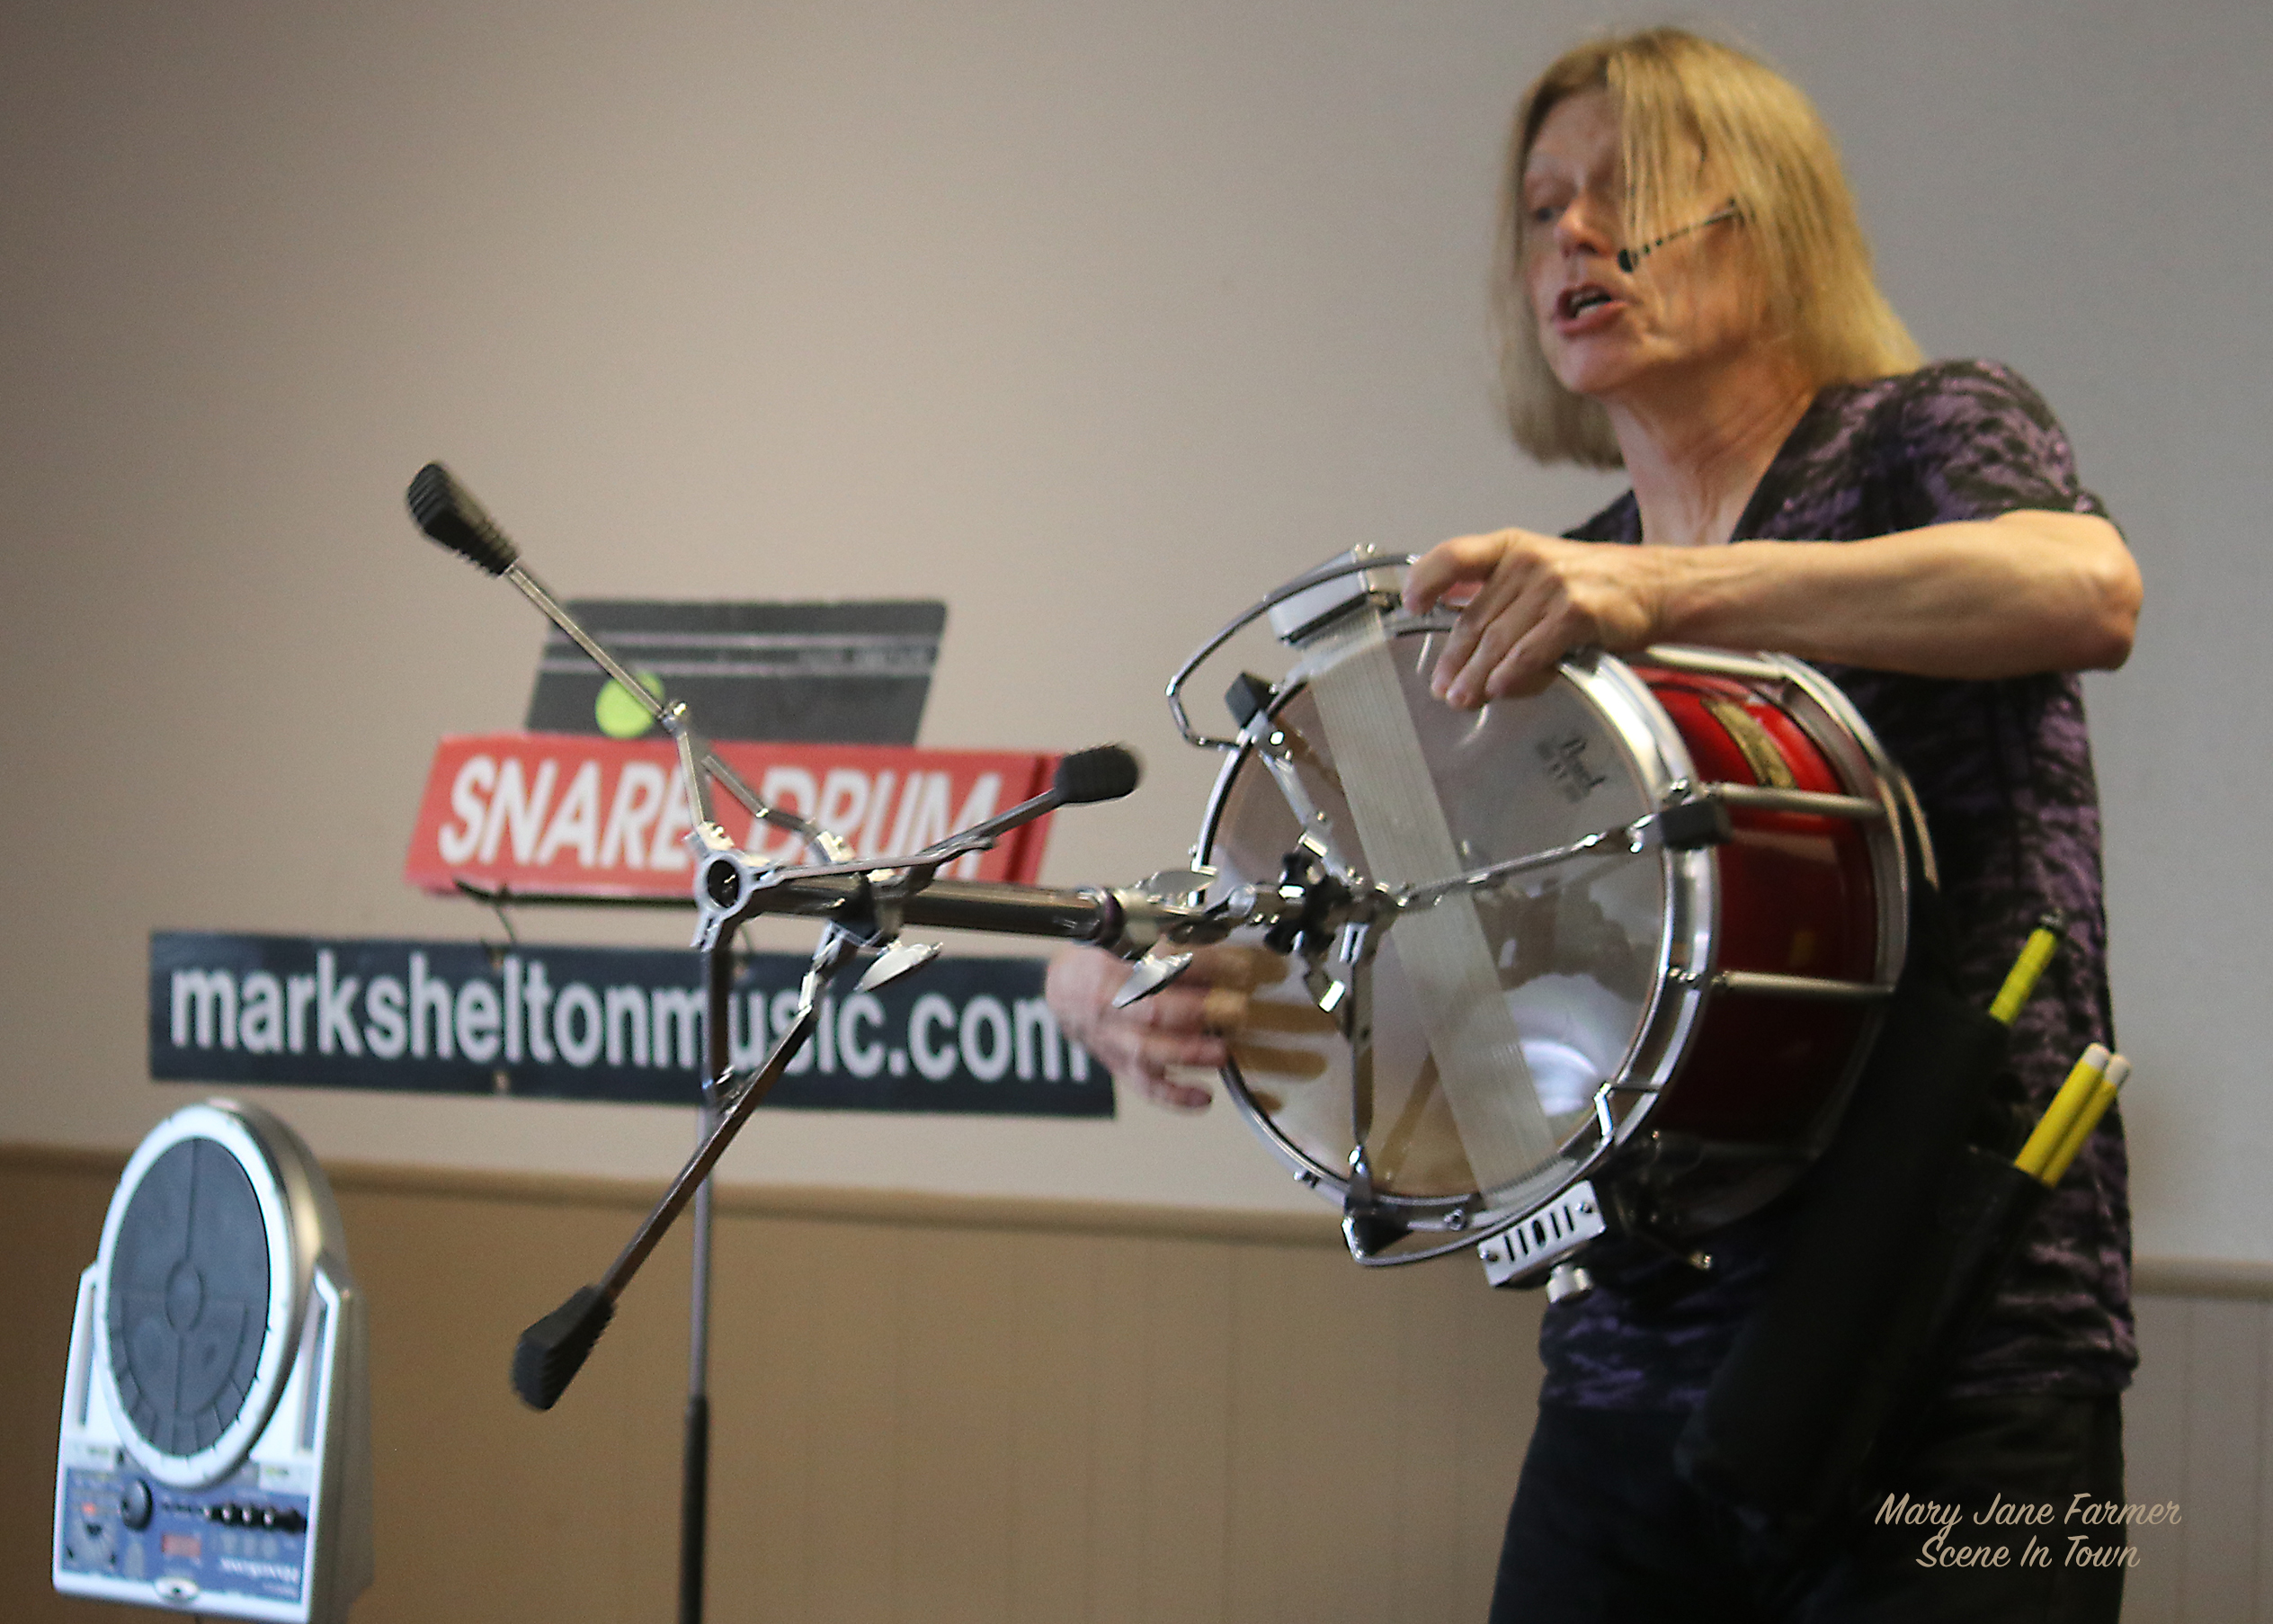 MS 7 with snare